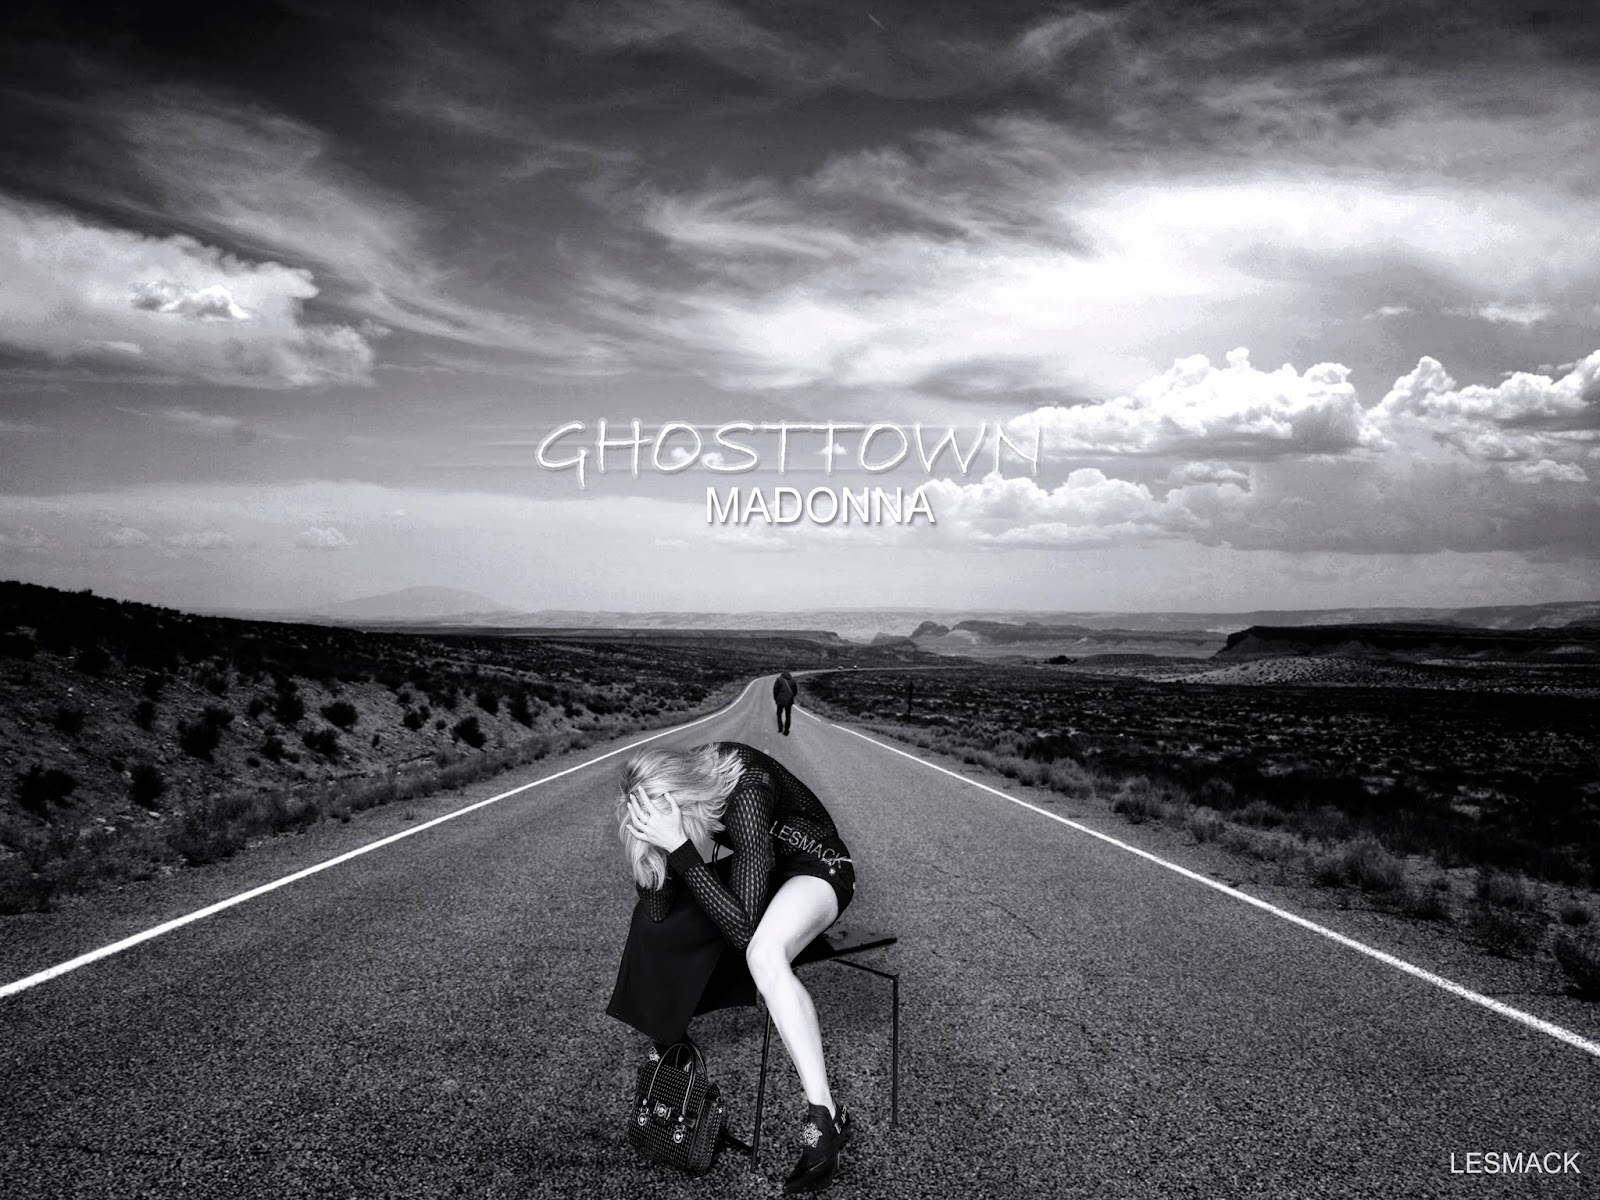 Madonna Fanmade Covers Ghosttown Wallpaper